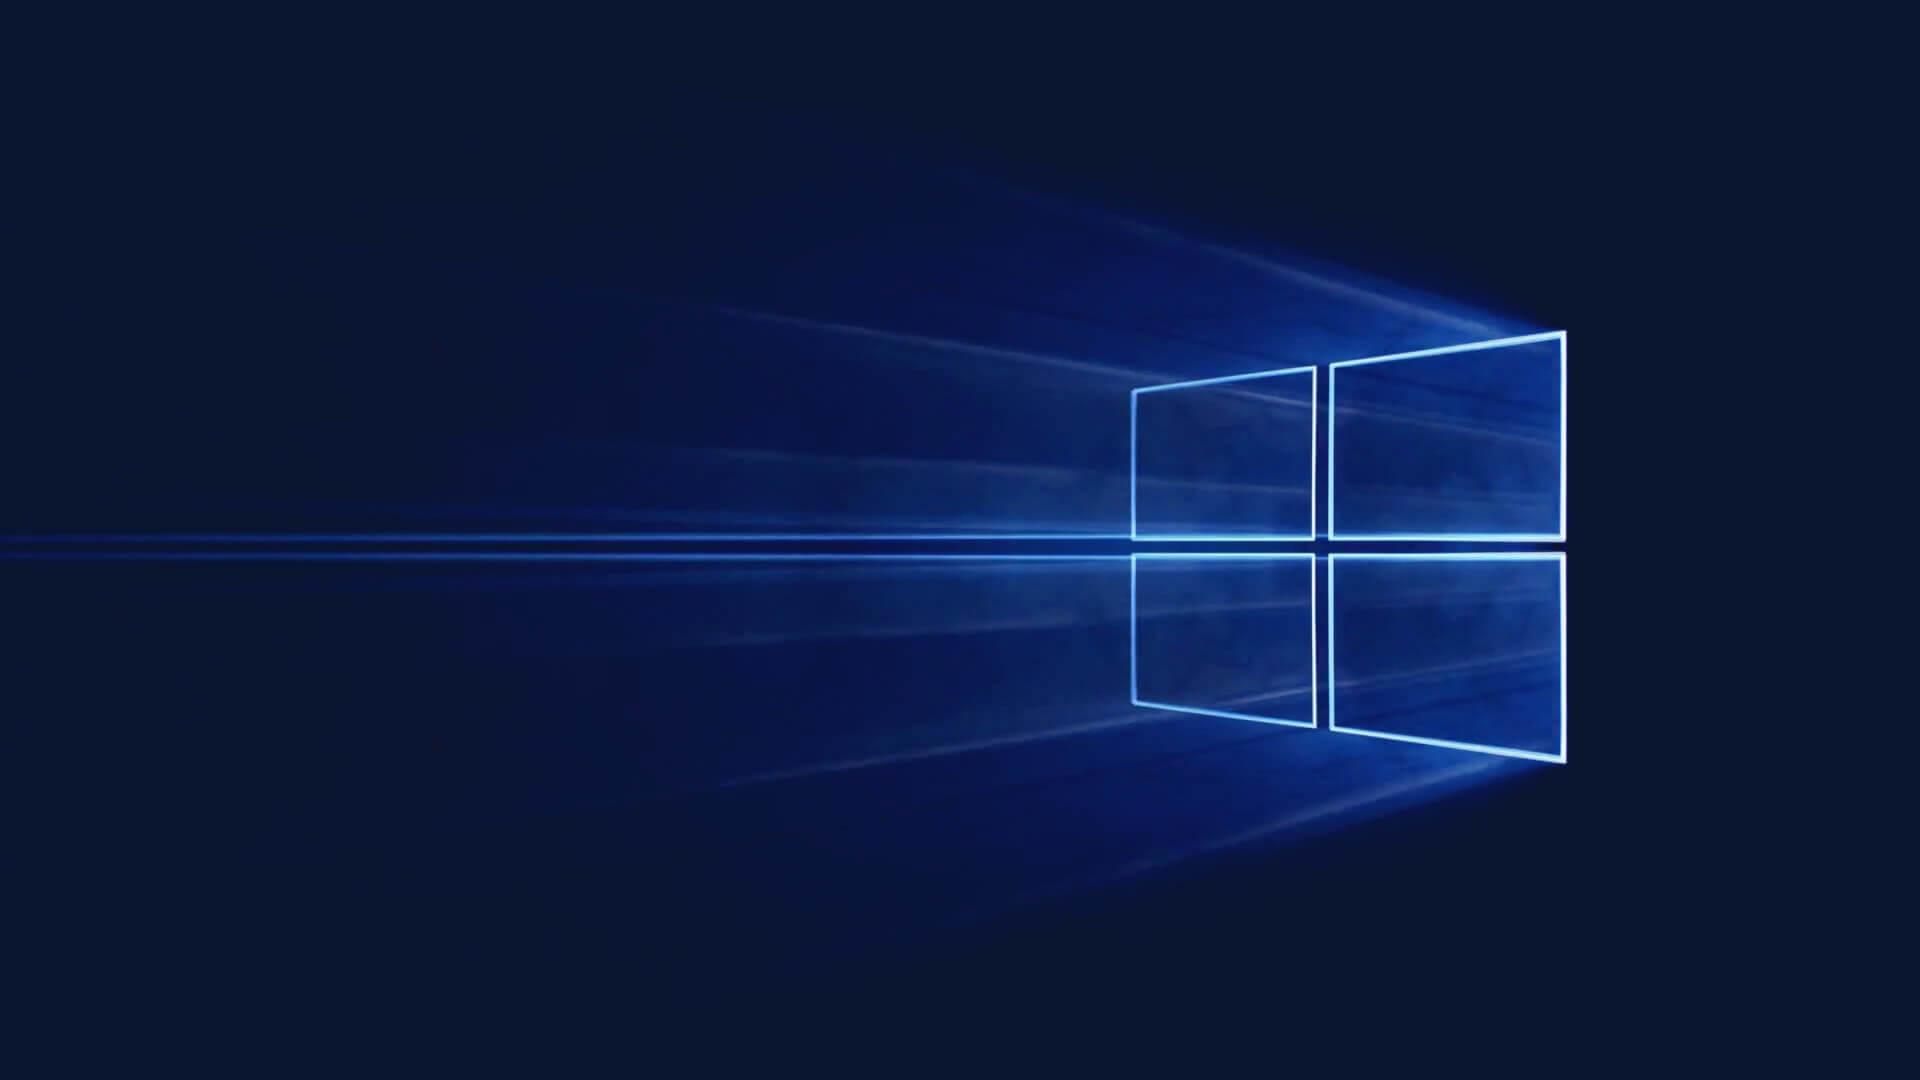 Windows 10 Update Issues – Deleting Files